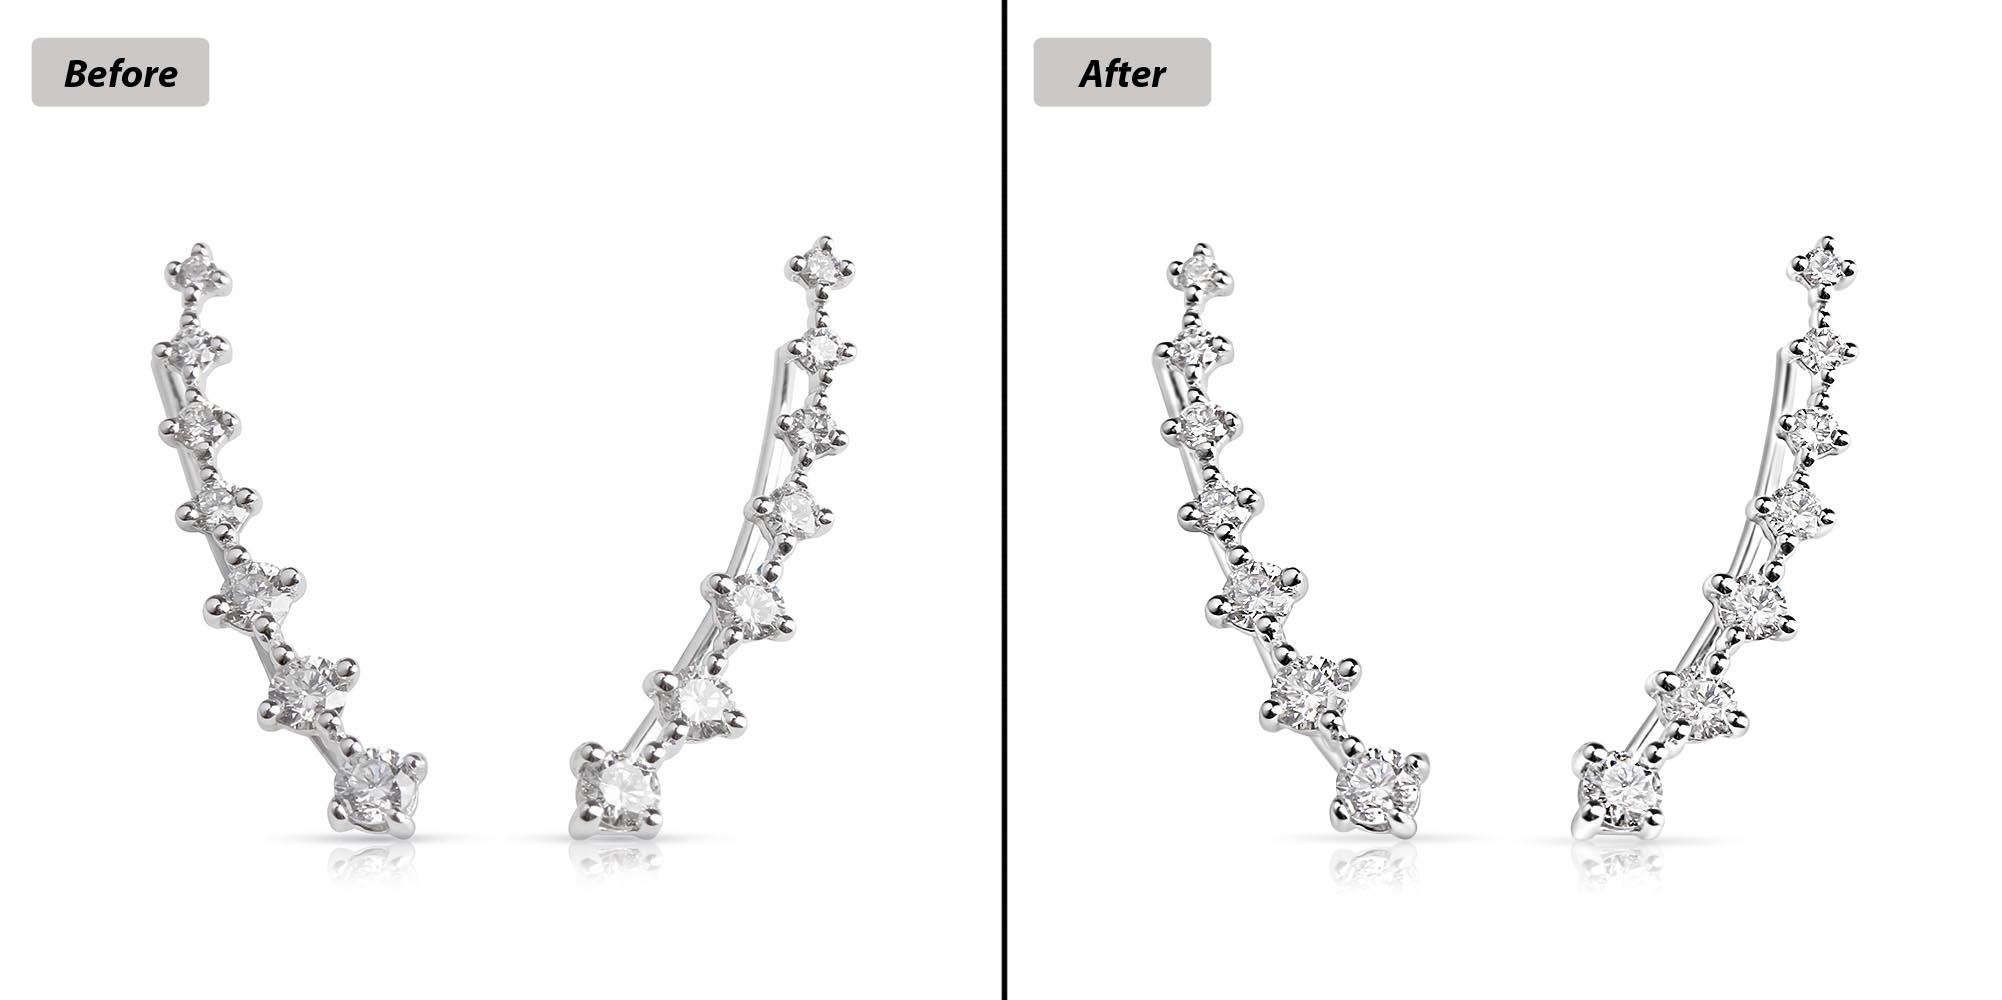 Clipping Charm_Jewellery retouch 0110